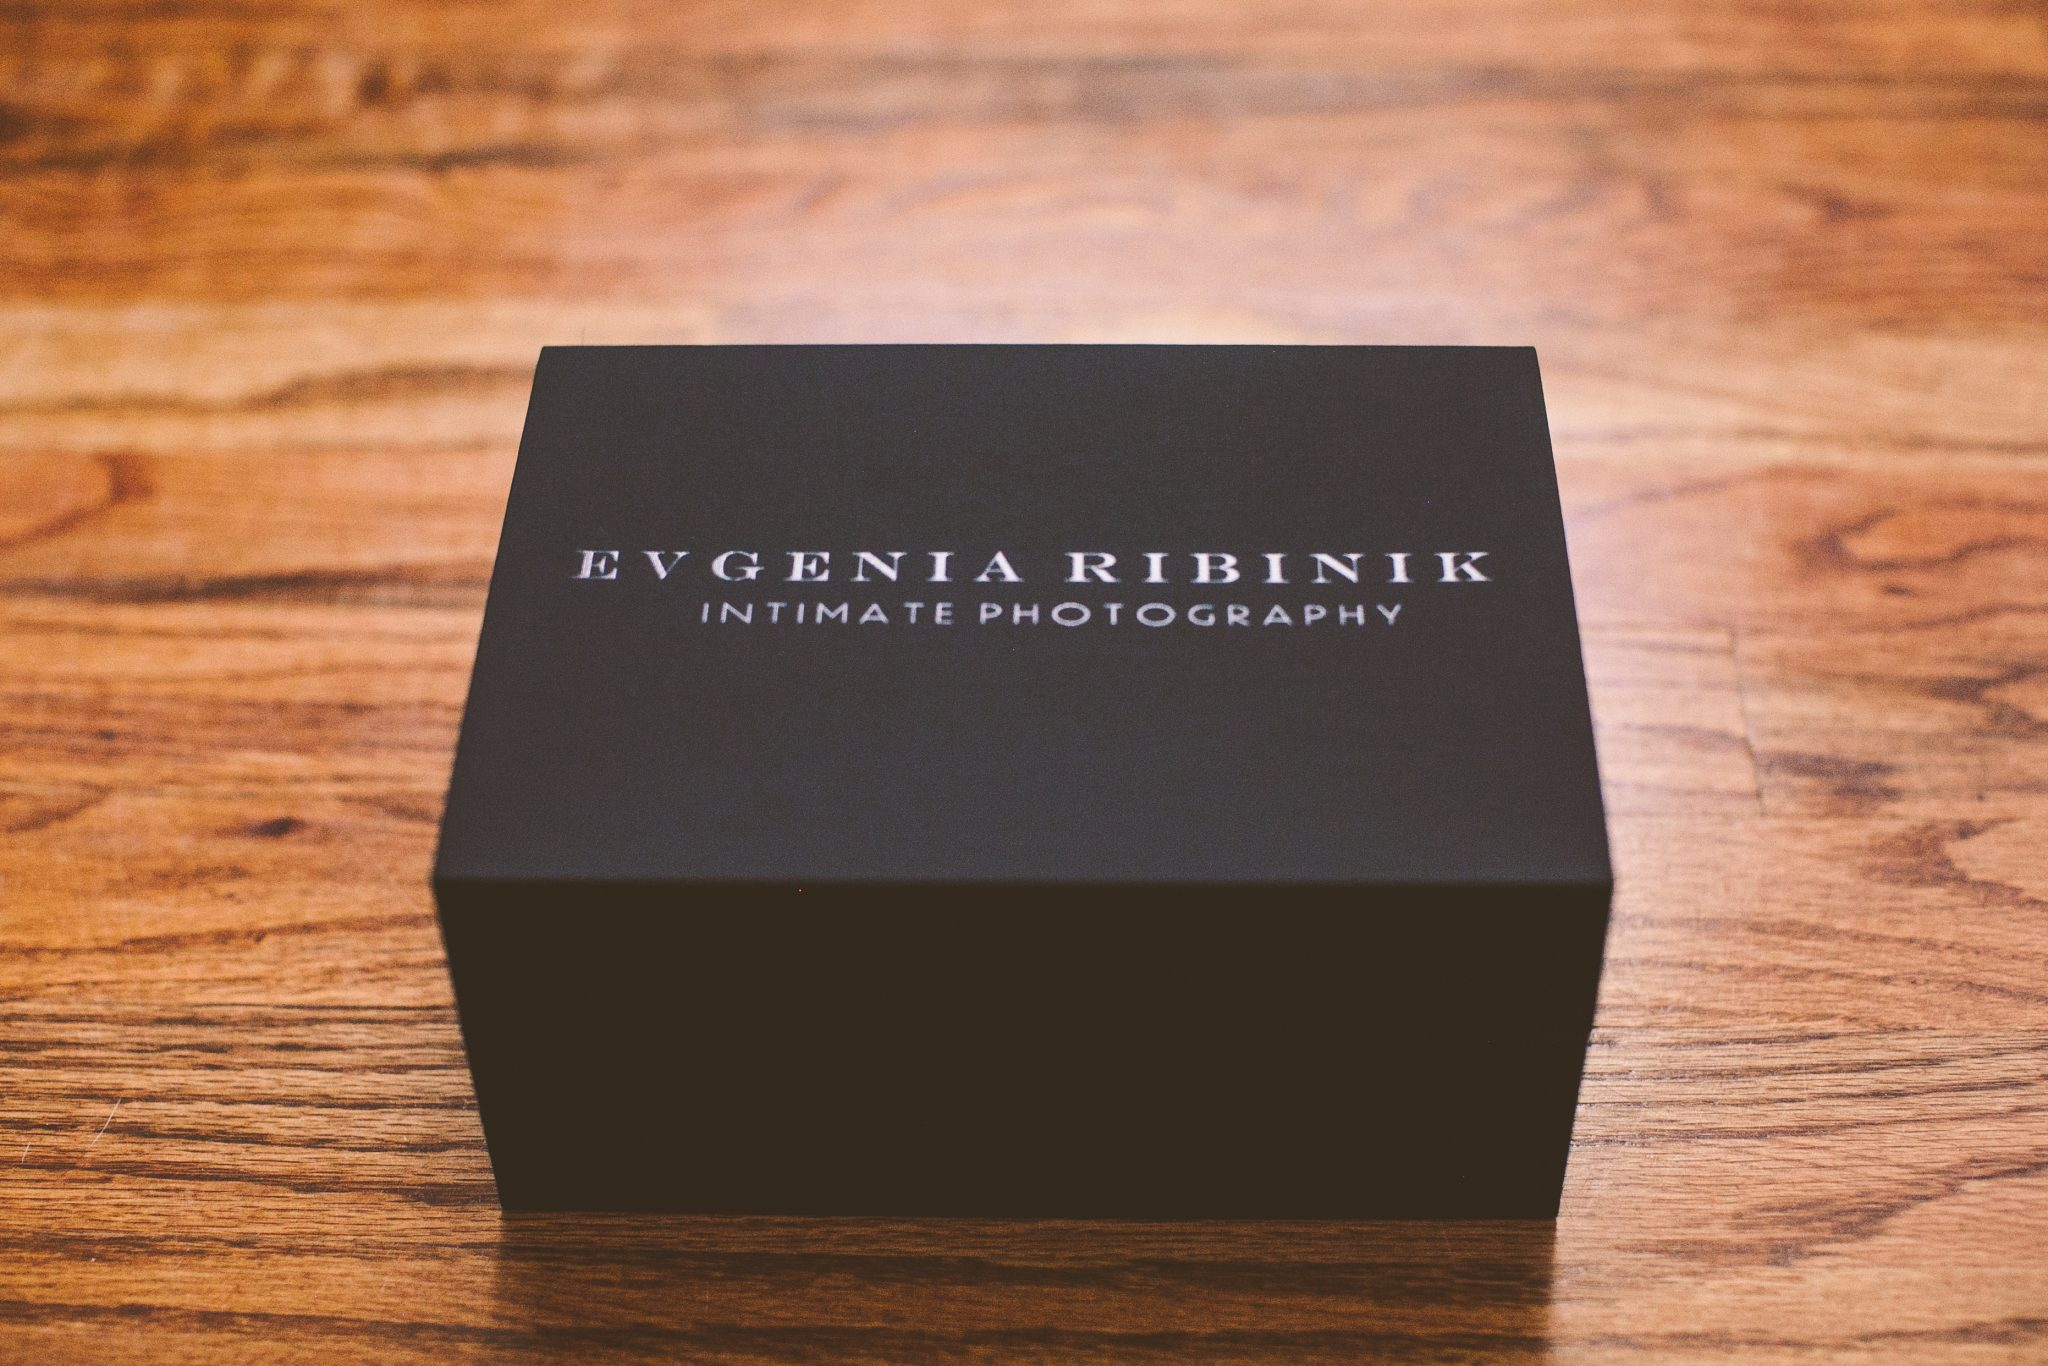 A boudoir prints box sitting on a table